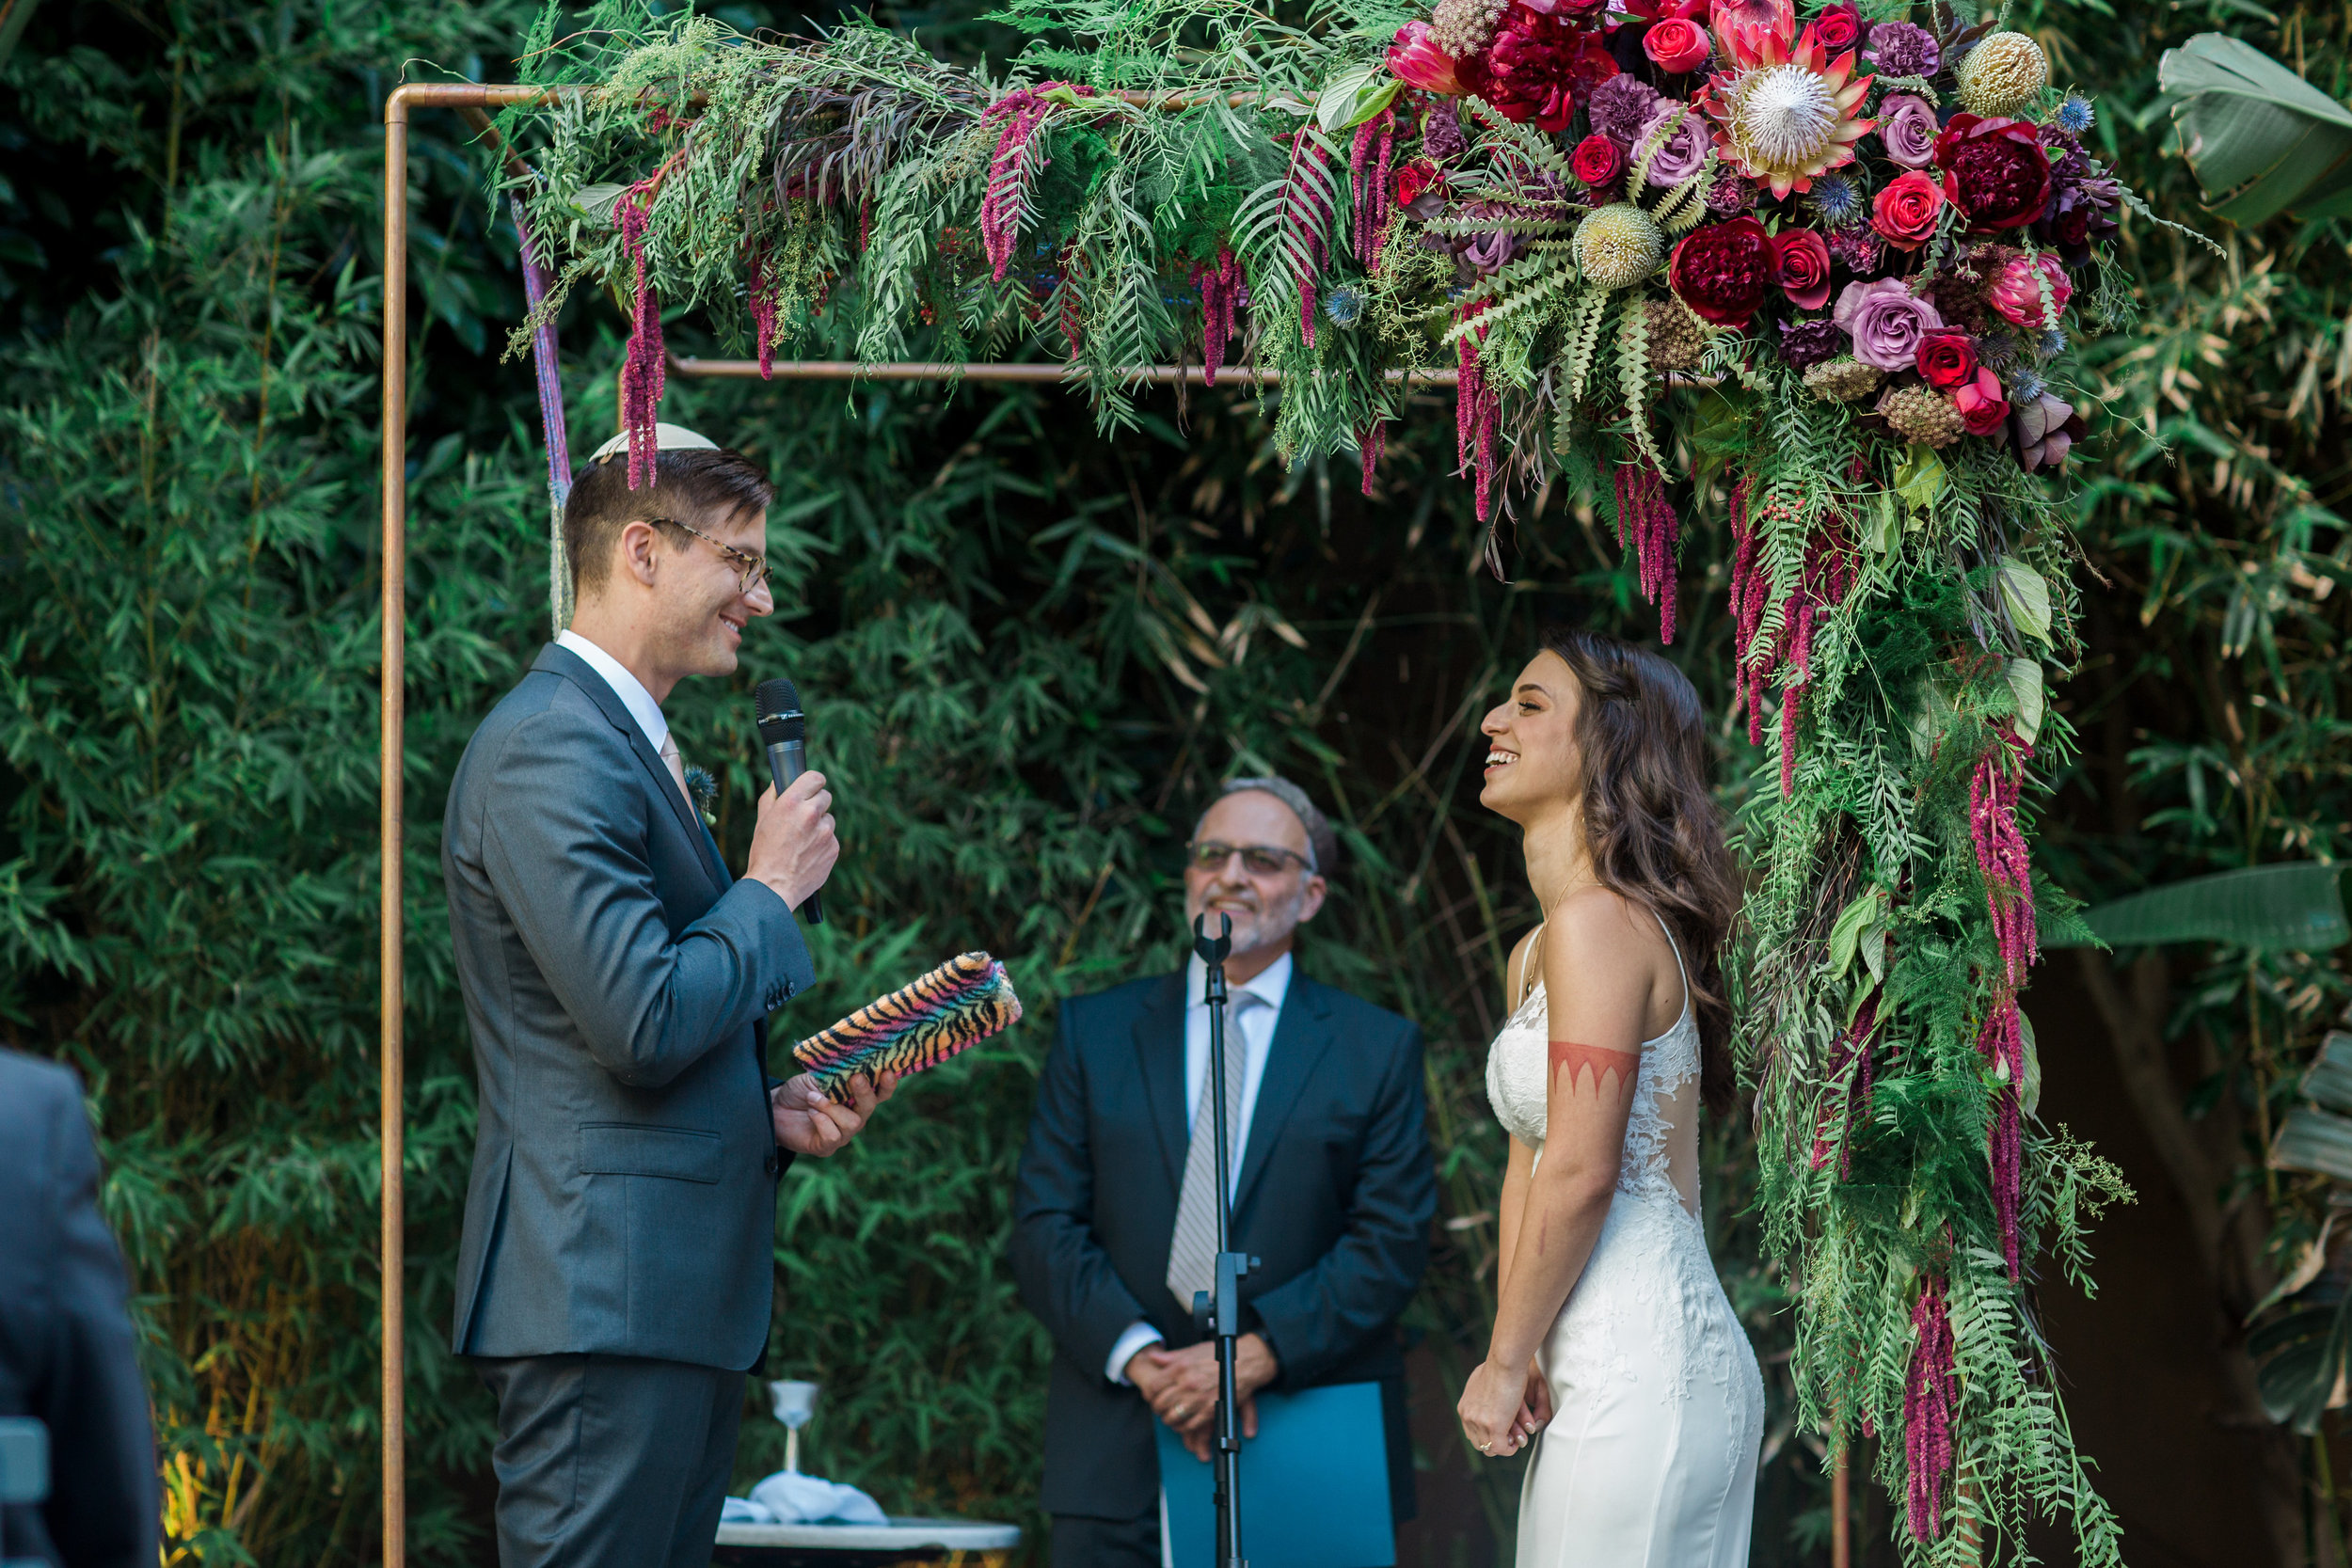 Personal Vows, Jewish Wedding Ceremony  at Millwick. Photographer:  Casey Brodley , Florals:  Shindig Chic